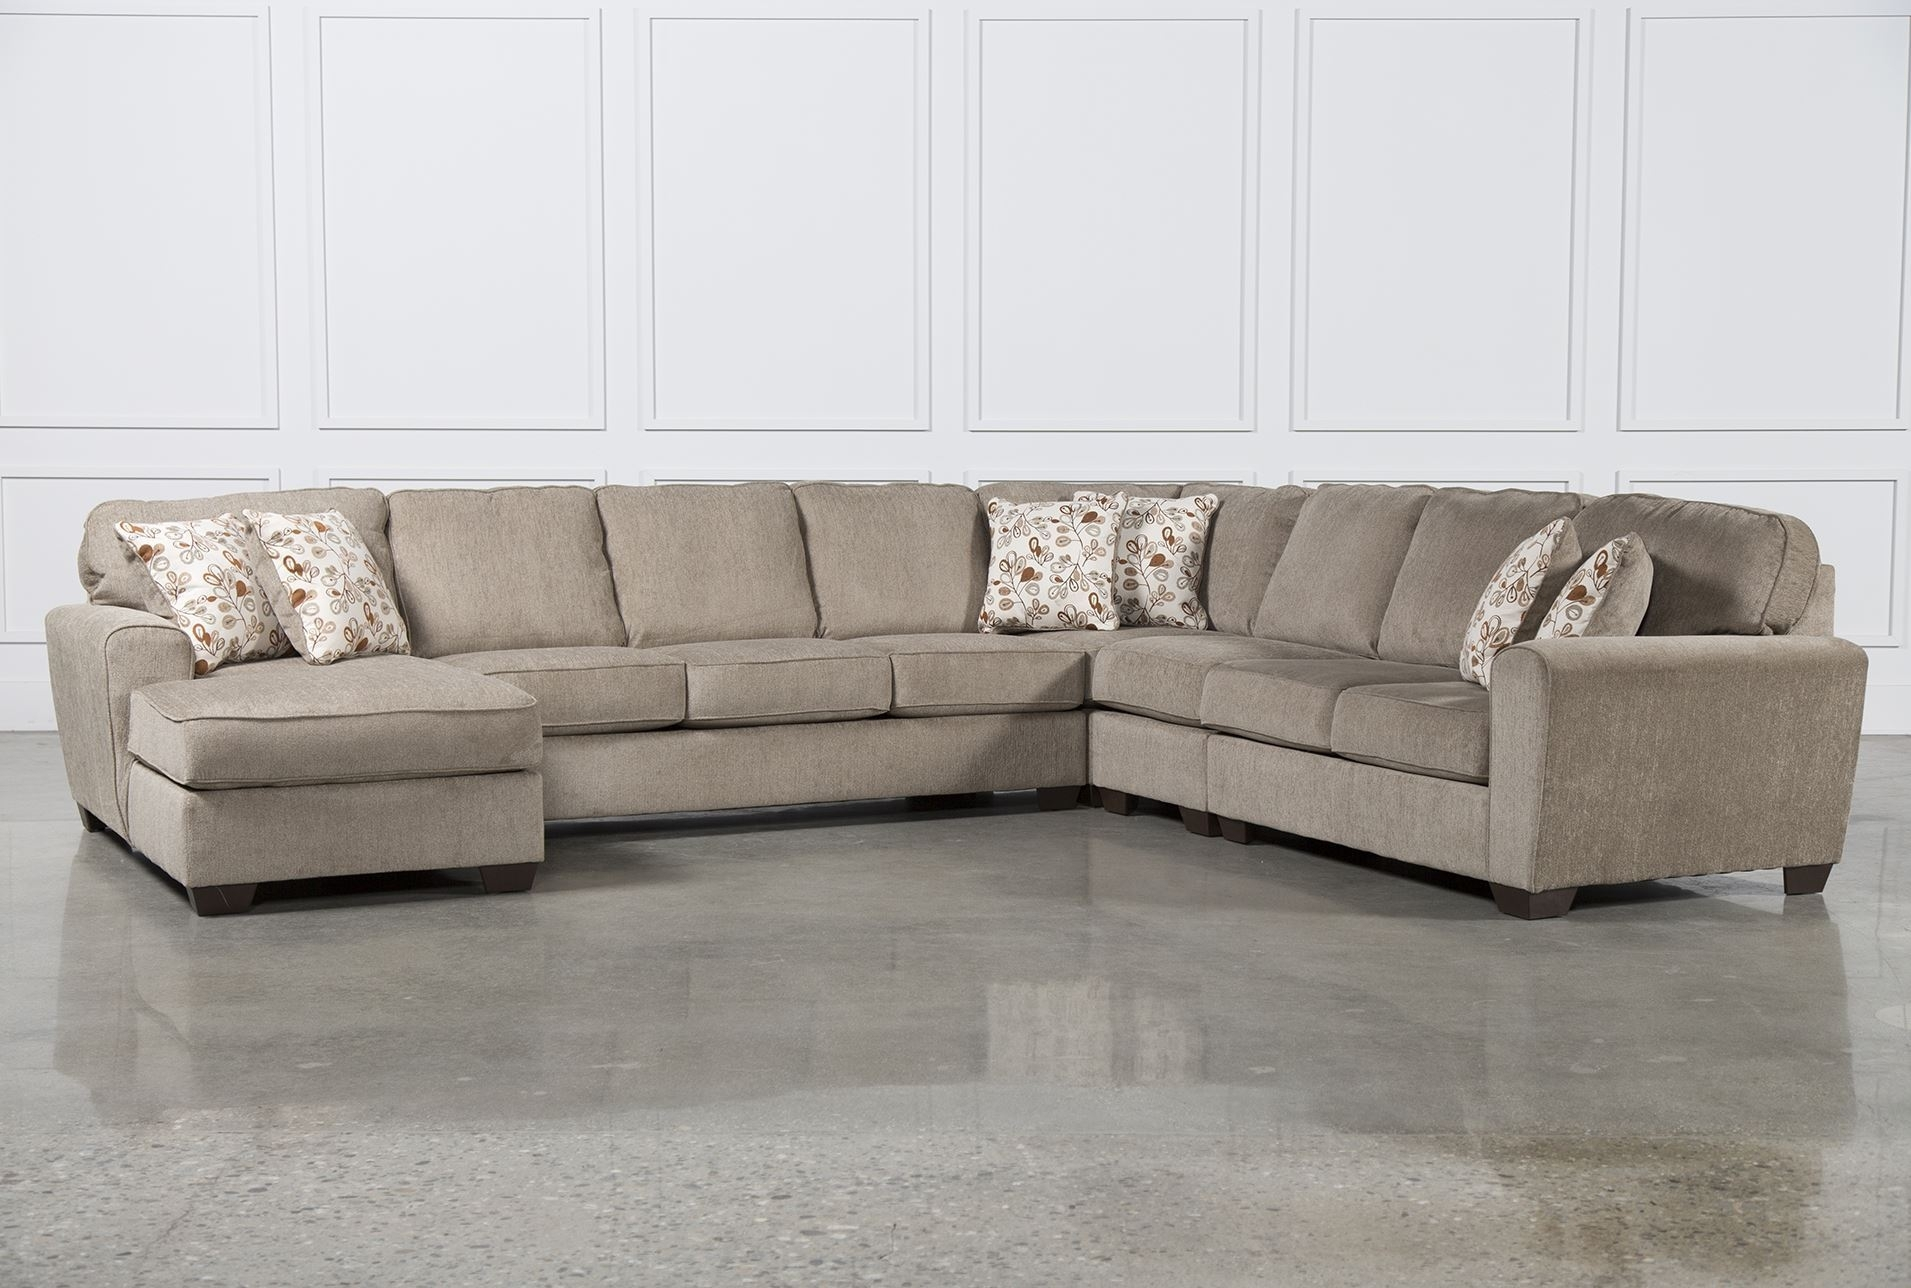 Best Ideas Of Laf Chaise On Gordon 3 Piece Sectional W Laf Chaise With Gordon 3 Piece Sectionals With Raf Chaise (Image 3 of 25)